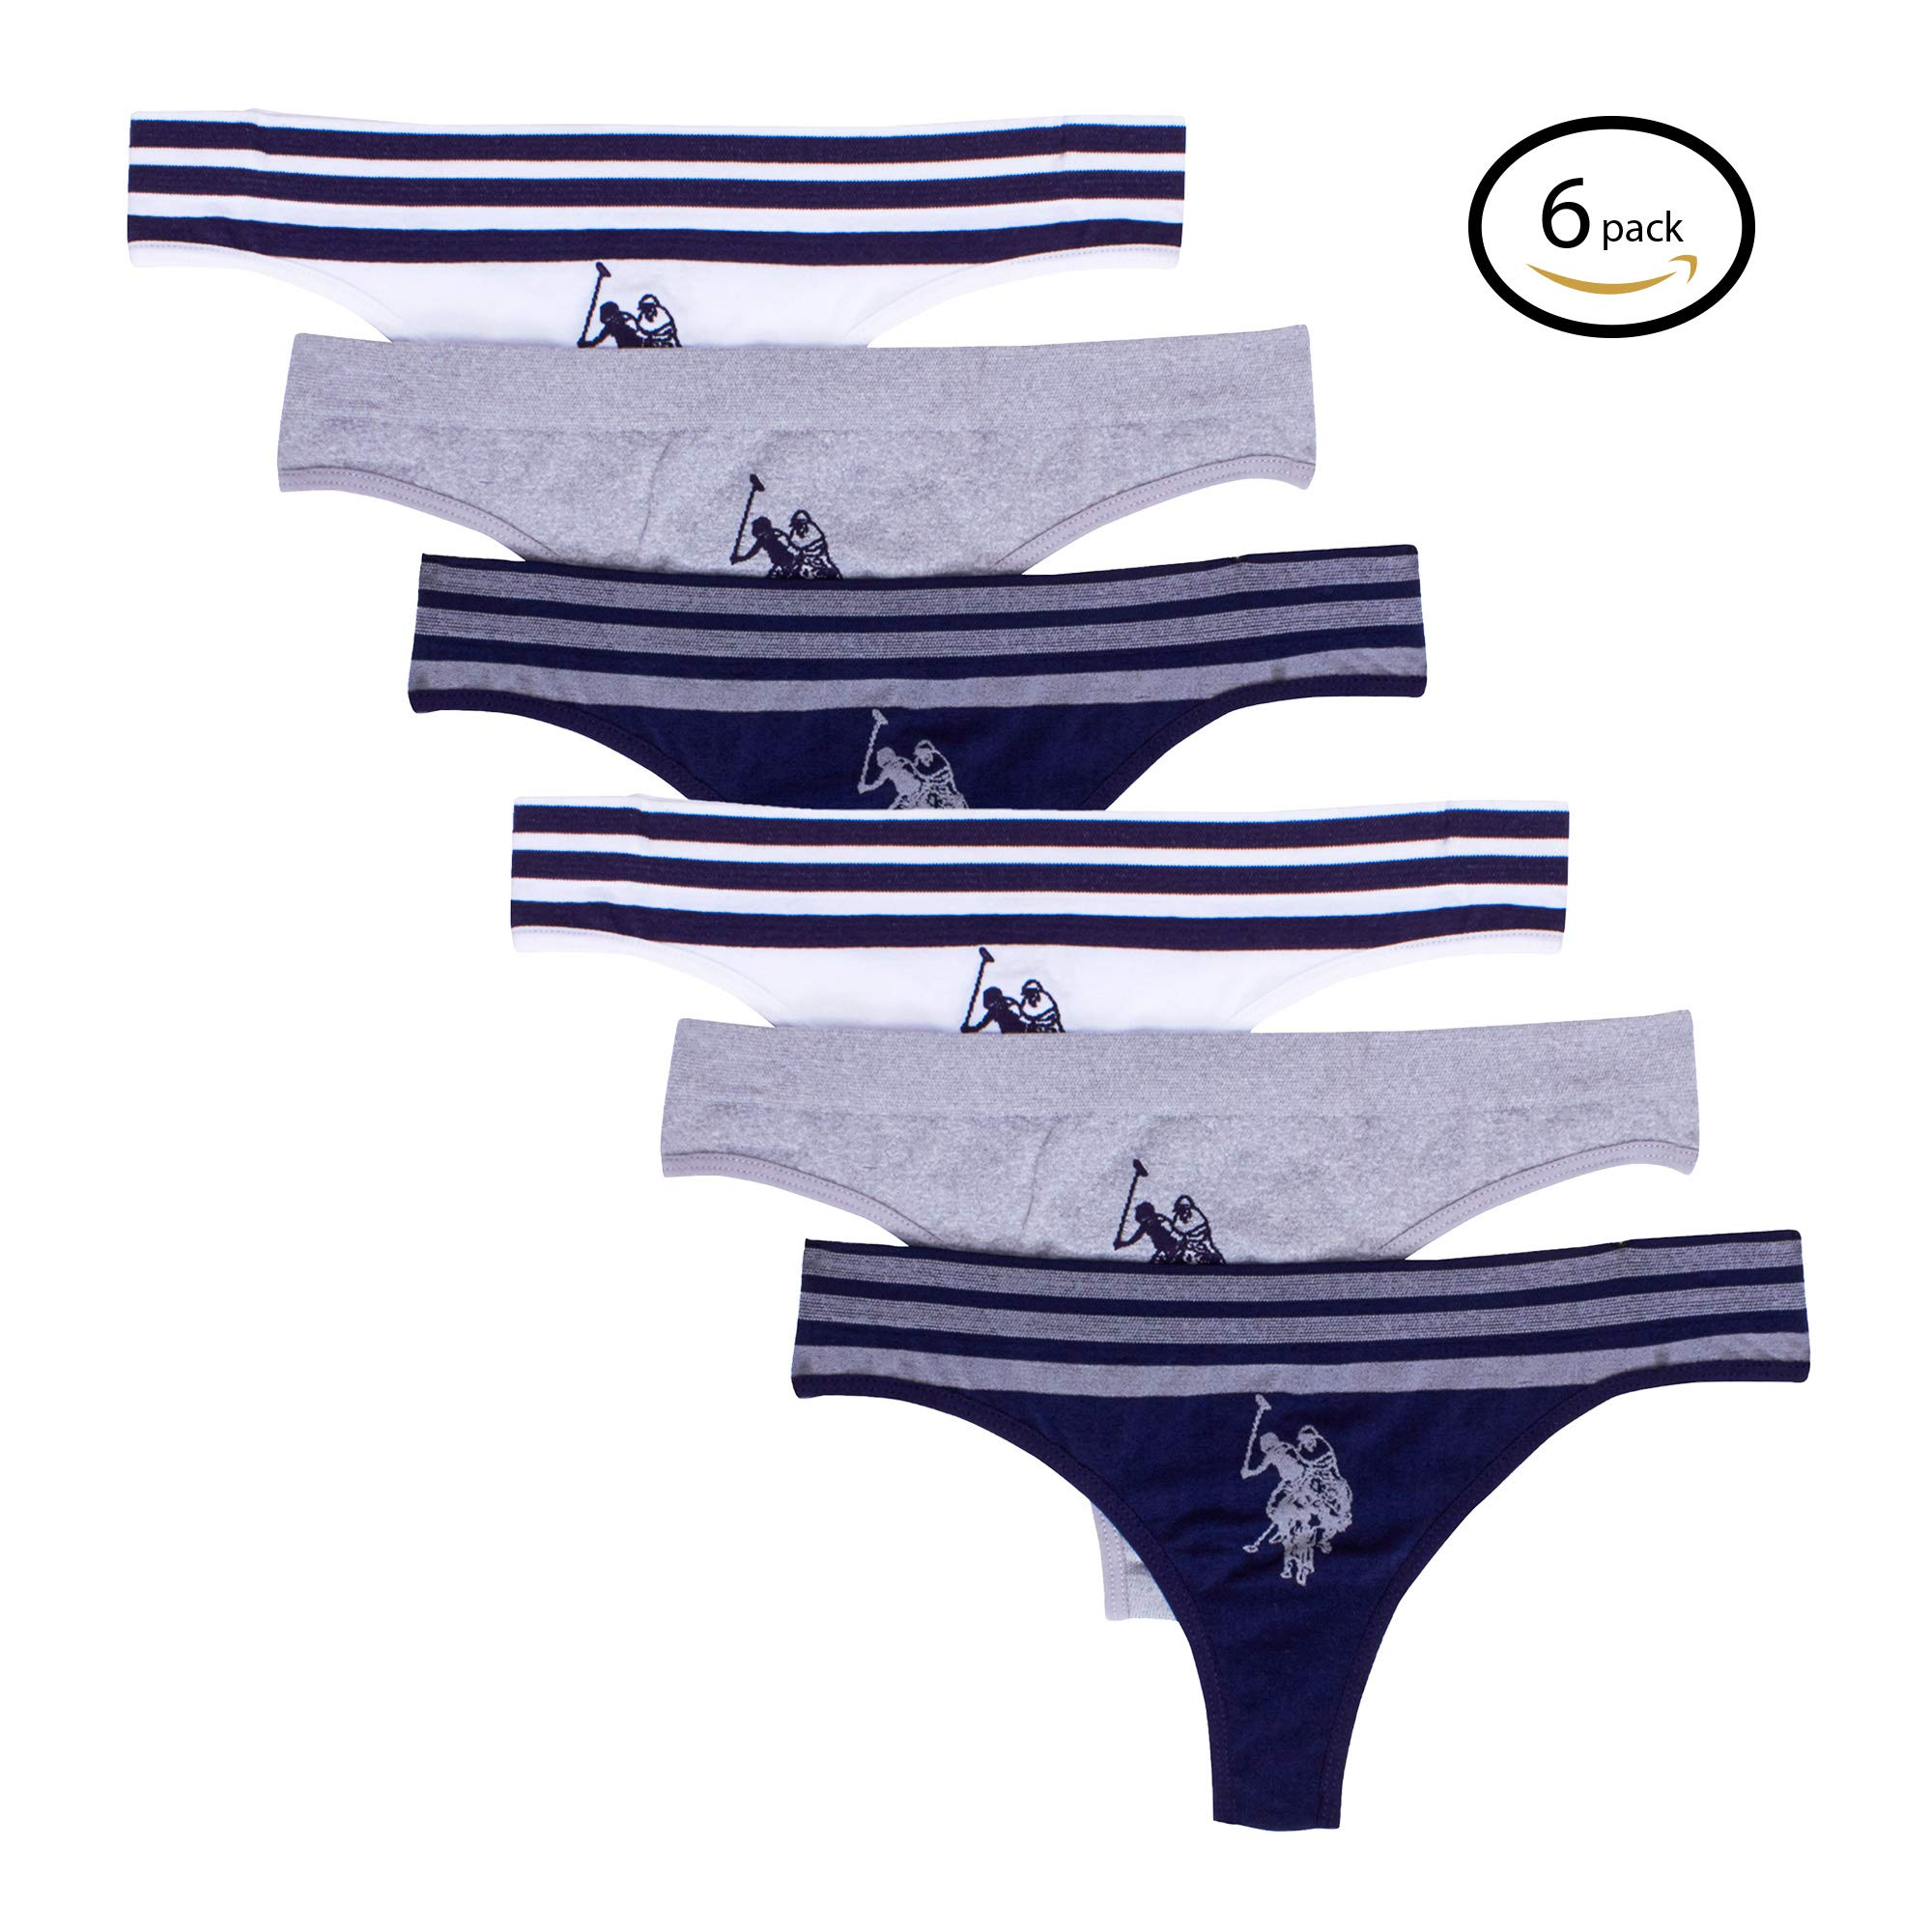 U.S. Polo Assn.. Womens 6 Pack Seamless Logo Thong Panties Evening Blue Water/Grey/White Medium